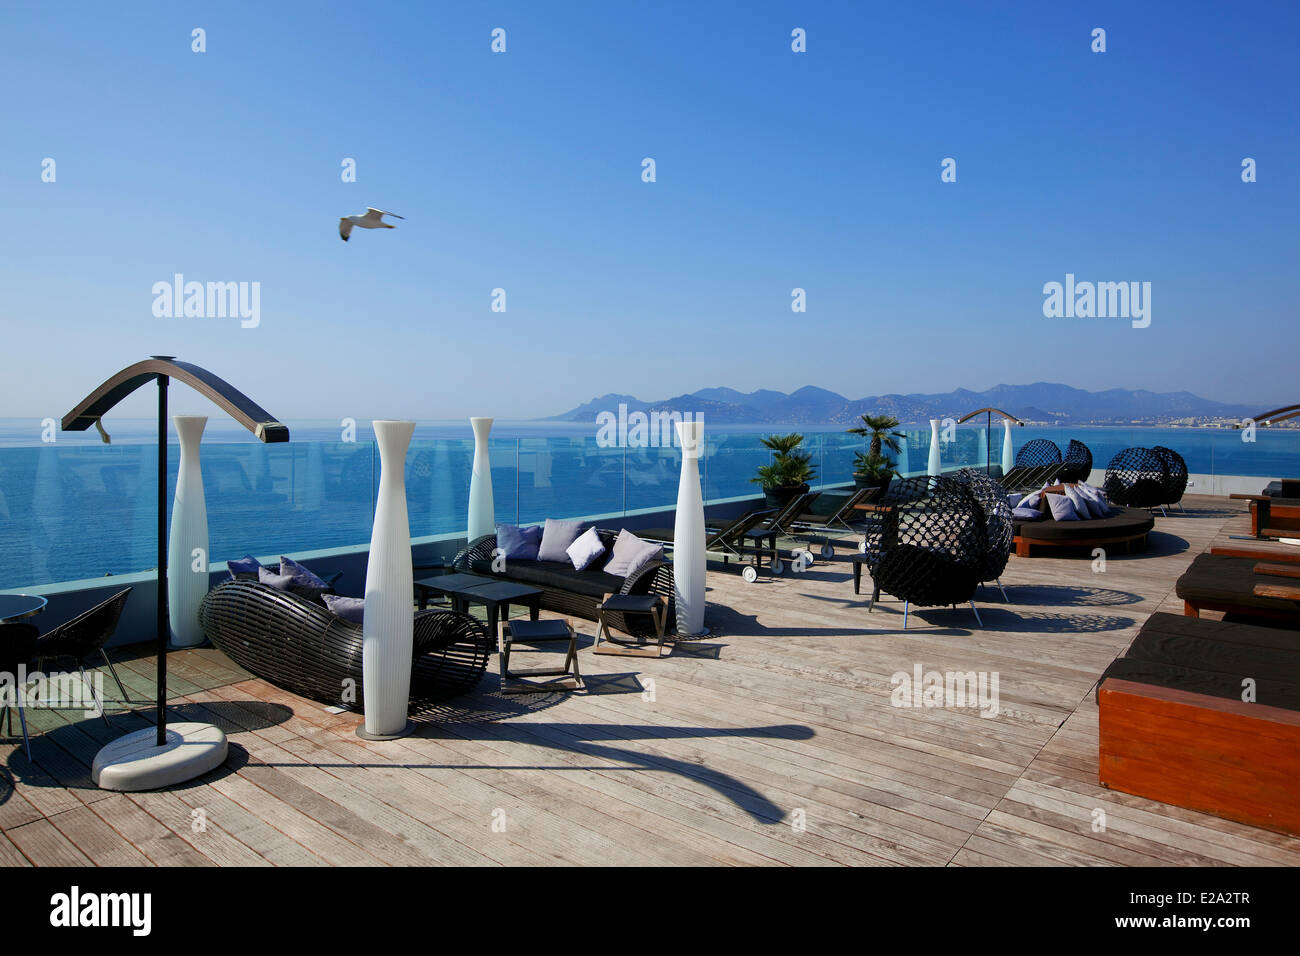 France, Alpes Maritimes, Cannes, Hotel Radisson Blu, rooftop terrace - Stock Image